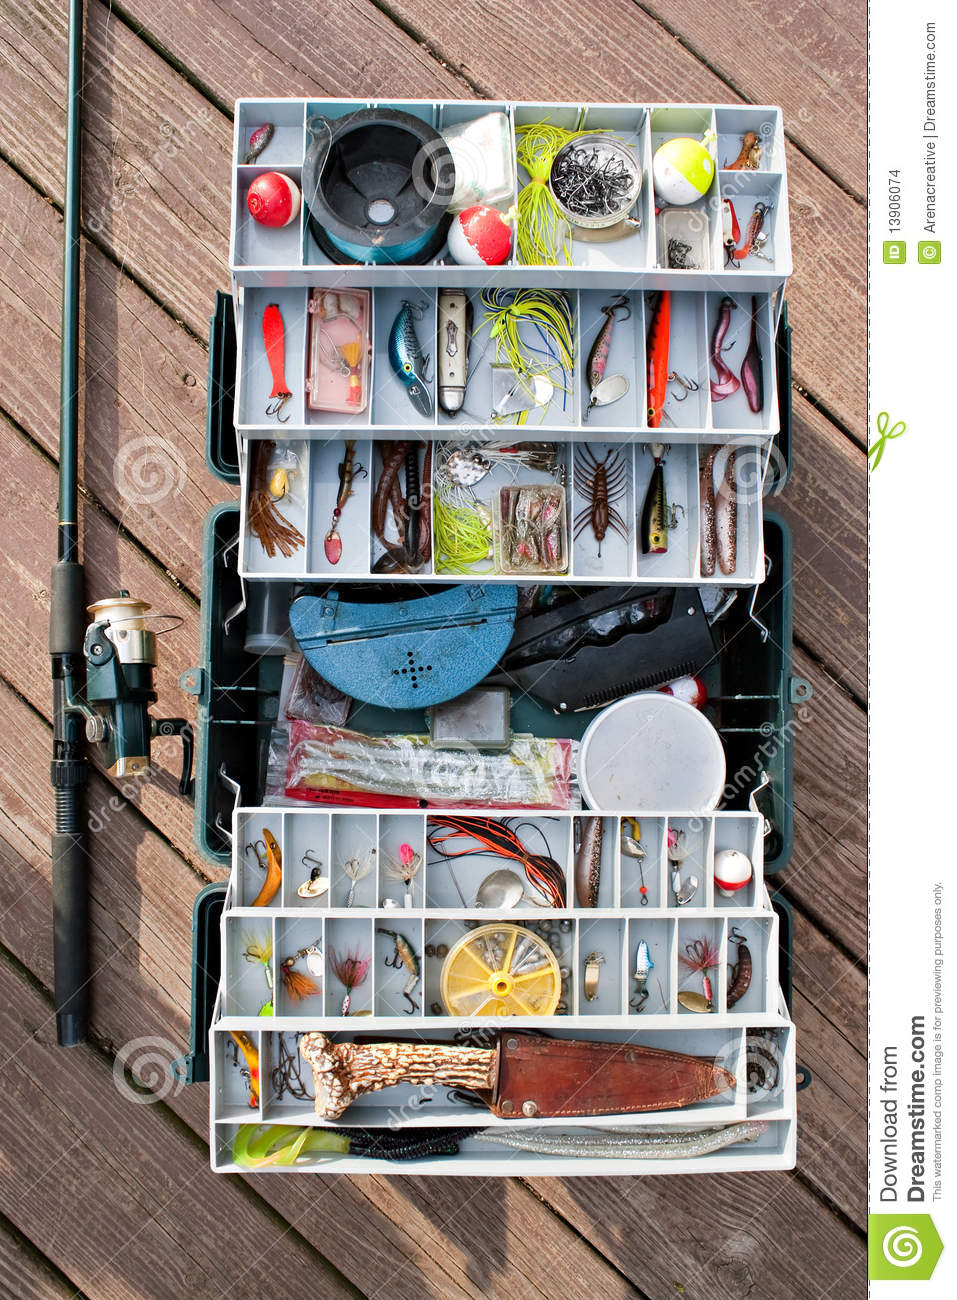 How to Organize a Fishing Tackle Box